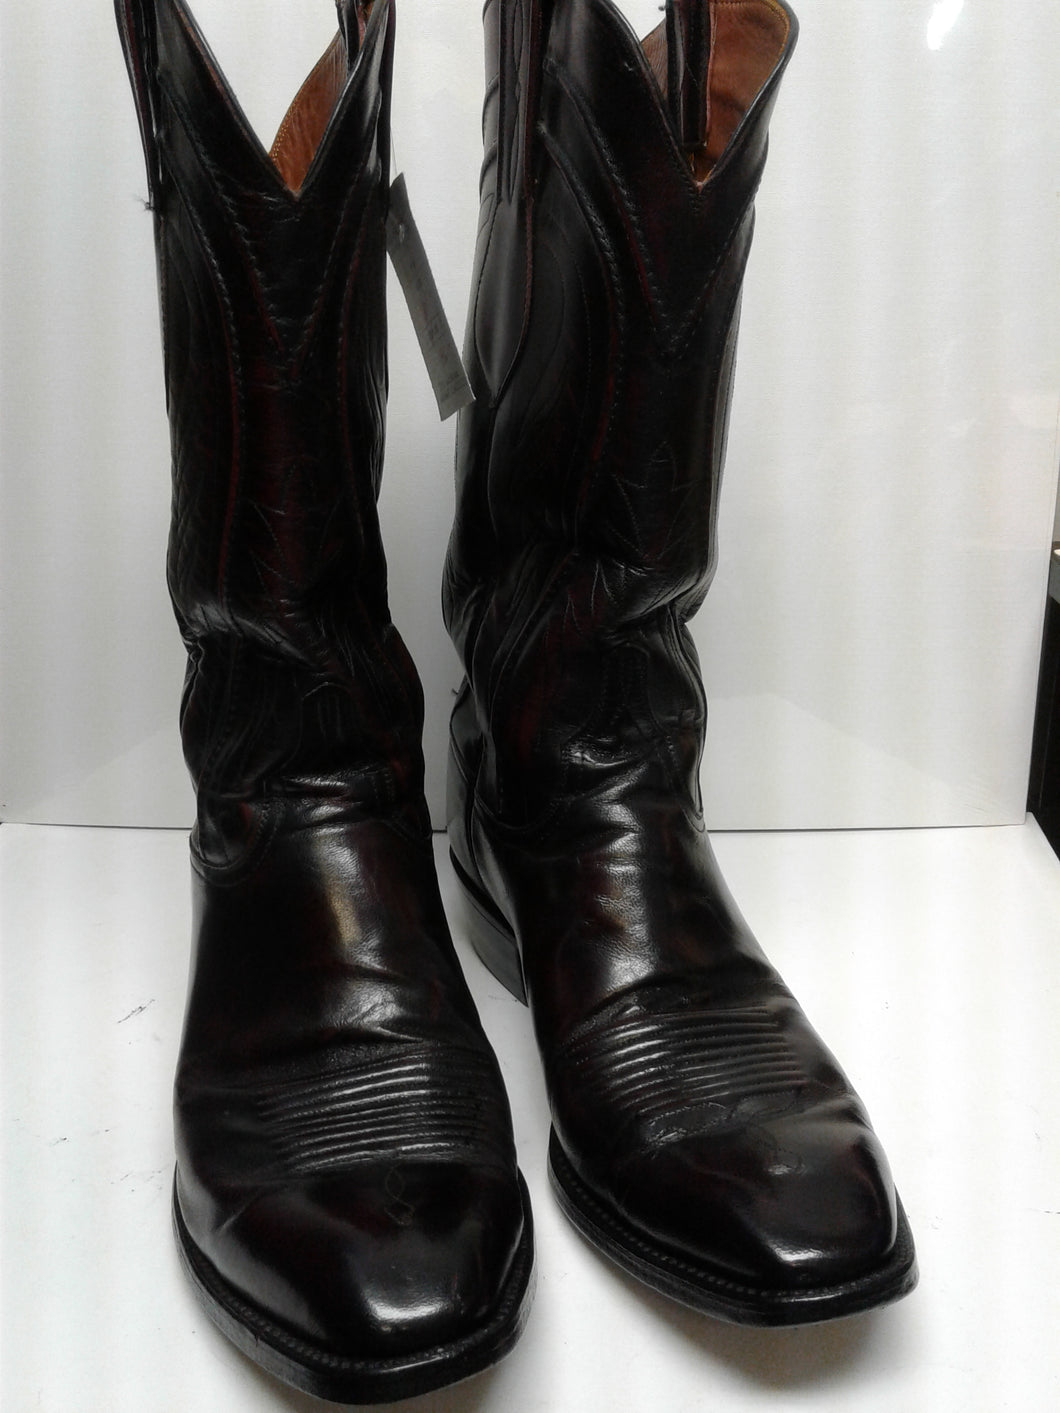 Lucchese Men's Boots Handmade Classic Black Cherry 9 D Fine Leather Preowned Excellent Condition $225